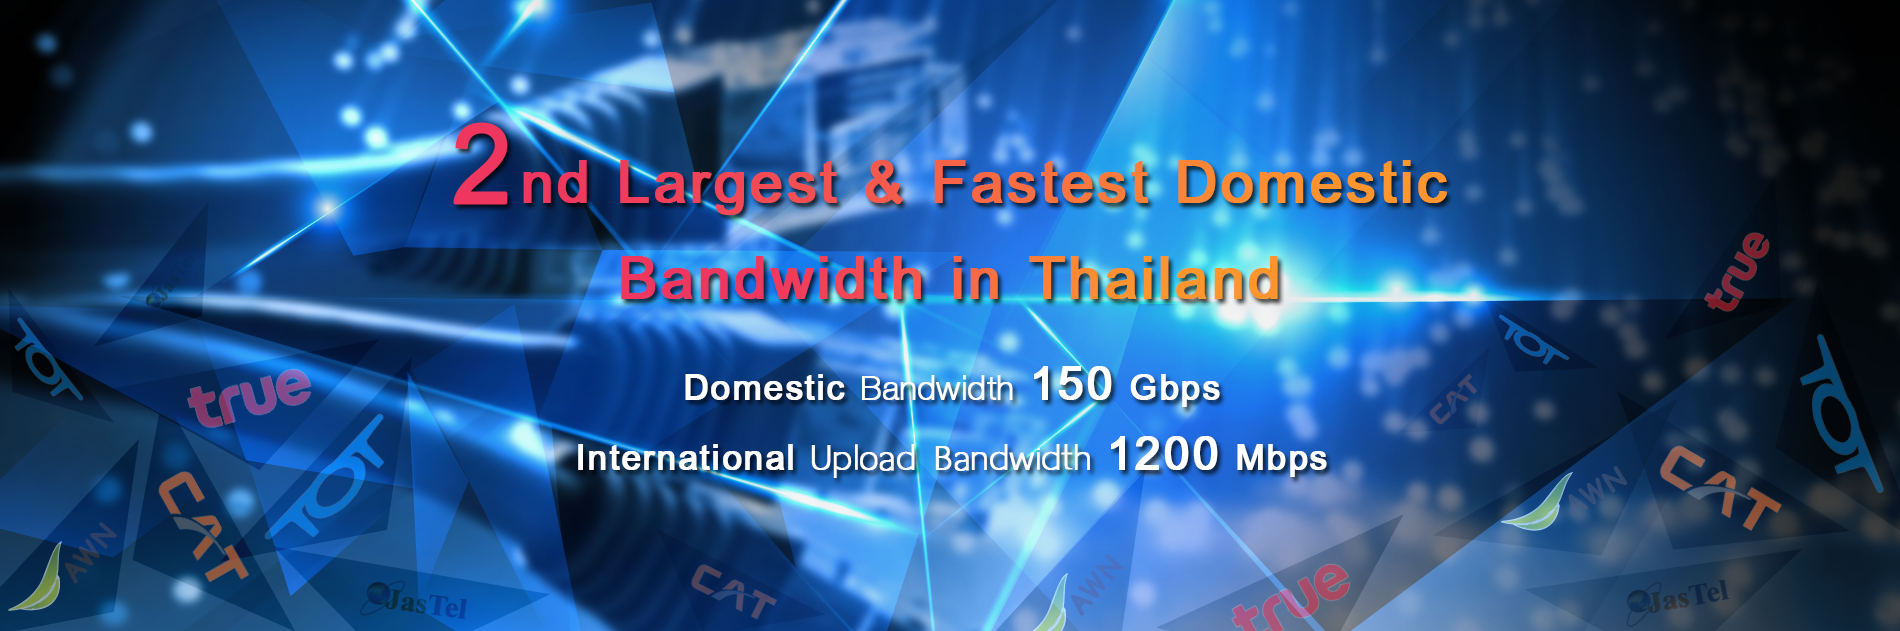 2nd Largest Fastest Domestic Bandwith in Thailand